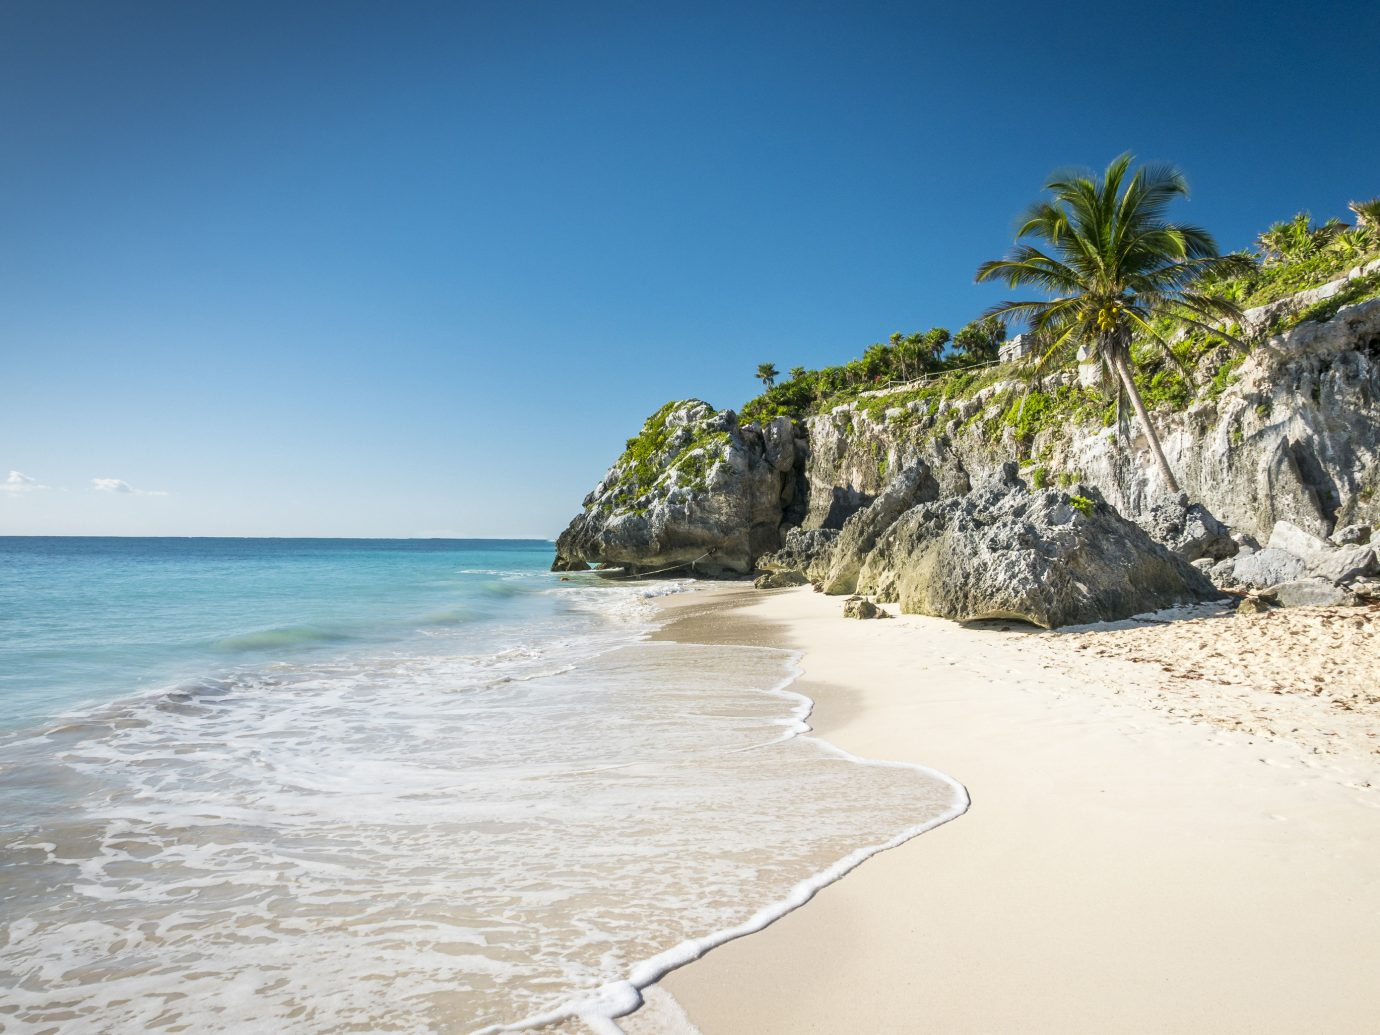 Boutique Hotels Hotels Mexico Trip Ideas Weekend Getaways Sea Beach body of water shore Coast coastal and oceanic landforms sky Ocean water tropics arecales caribbean palm tree vacation bay tourism promontory sand tree wave Island cape